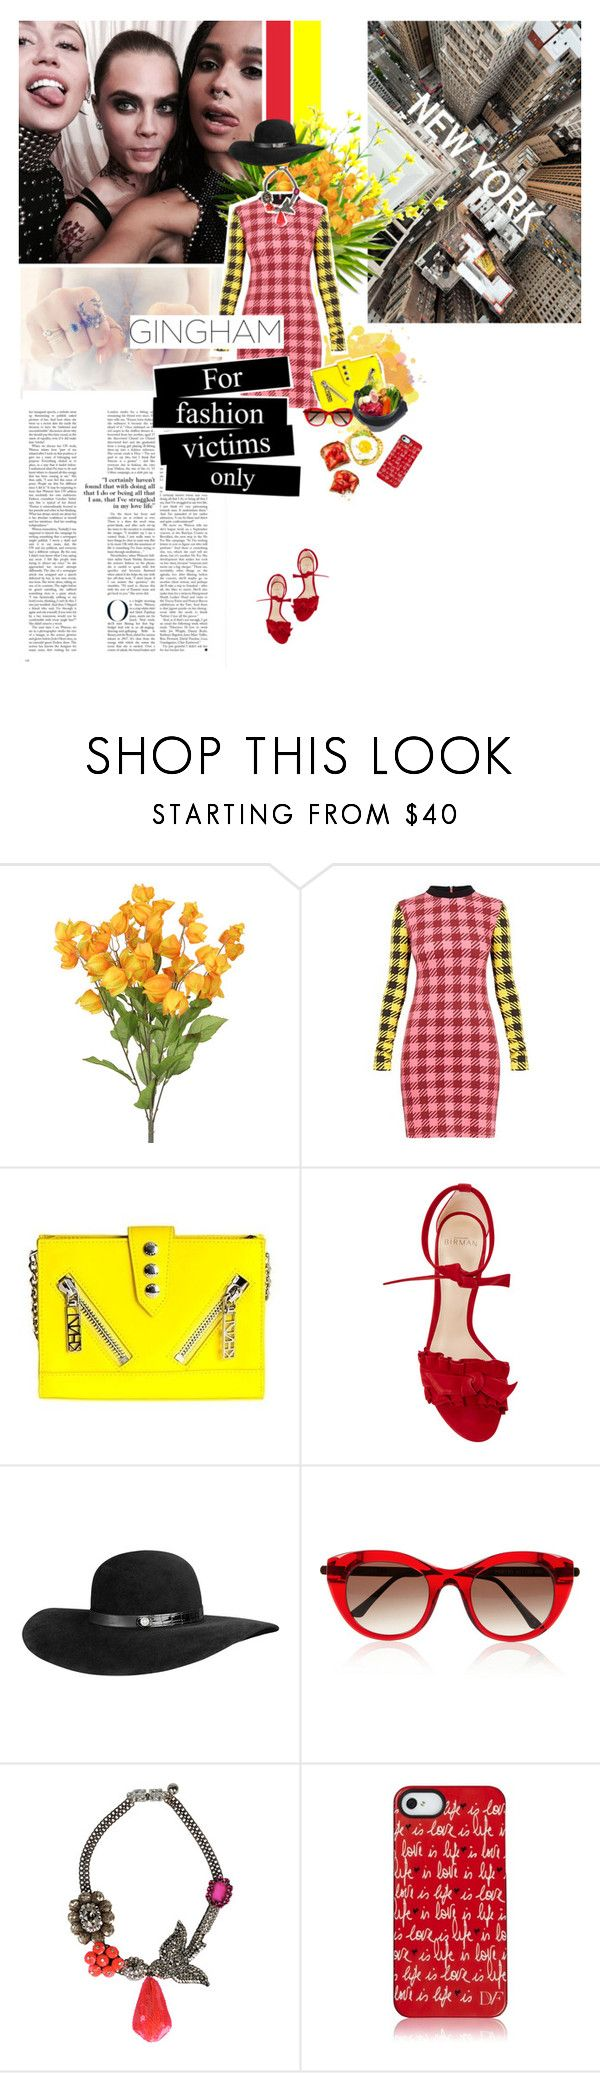 """Gingham VII"" by cheroro ❤ liked on Polyvore featuring Kenzo, Alexandre Birman, Thierry Lasry, Mambo, Shourouk and Diane Von Furstenberg"